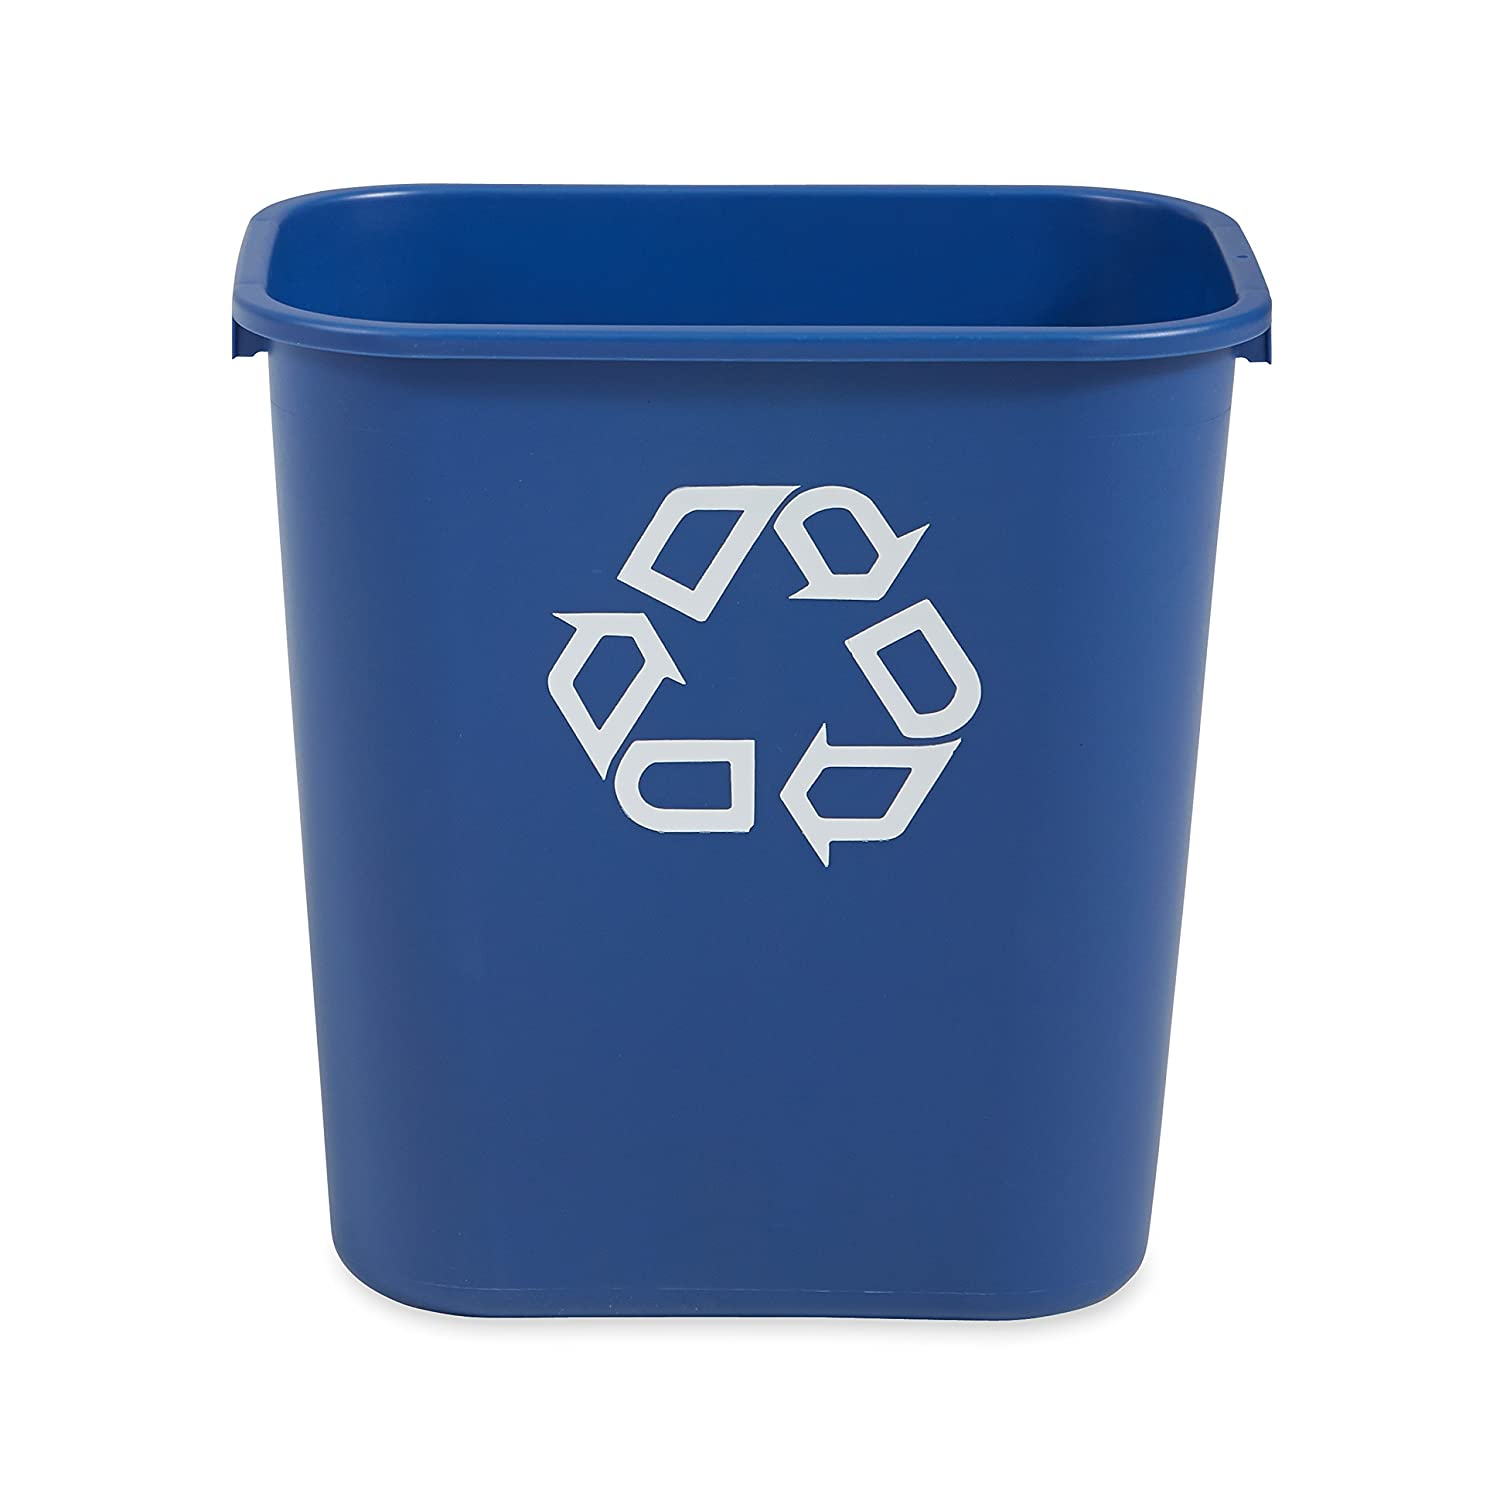 Rubbermaid Commercial Products FG295673BLUE Plastic Resin Deskside Recycling Can 7 Gallon28 Quart